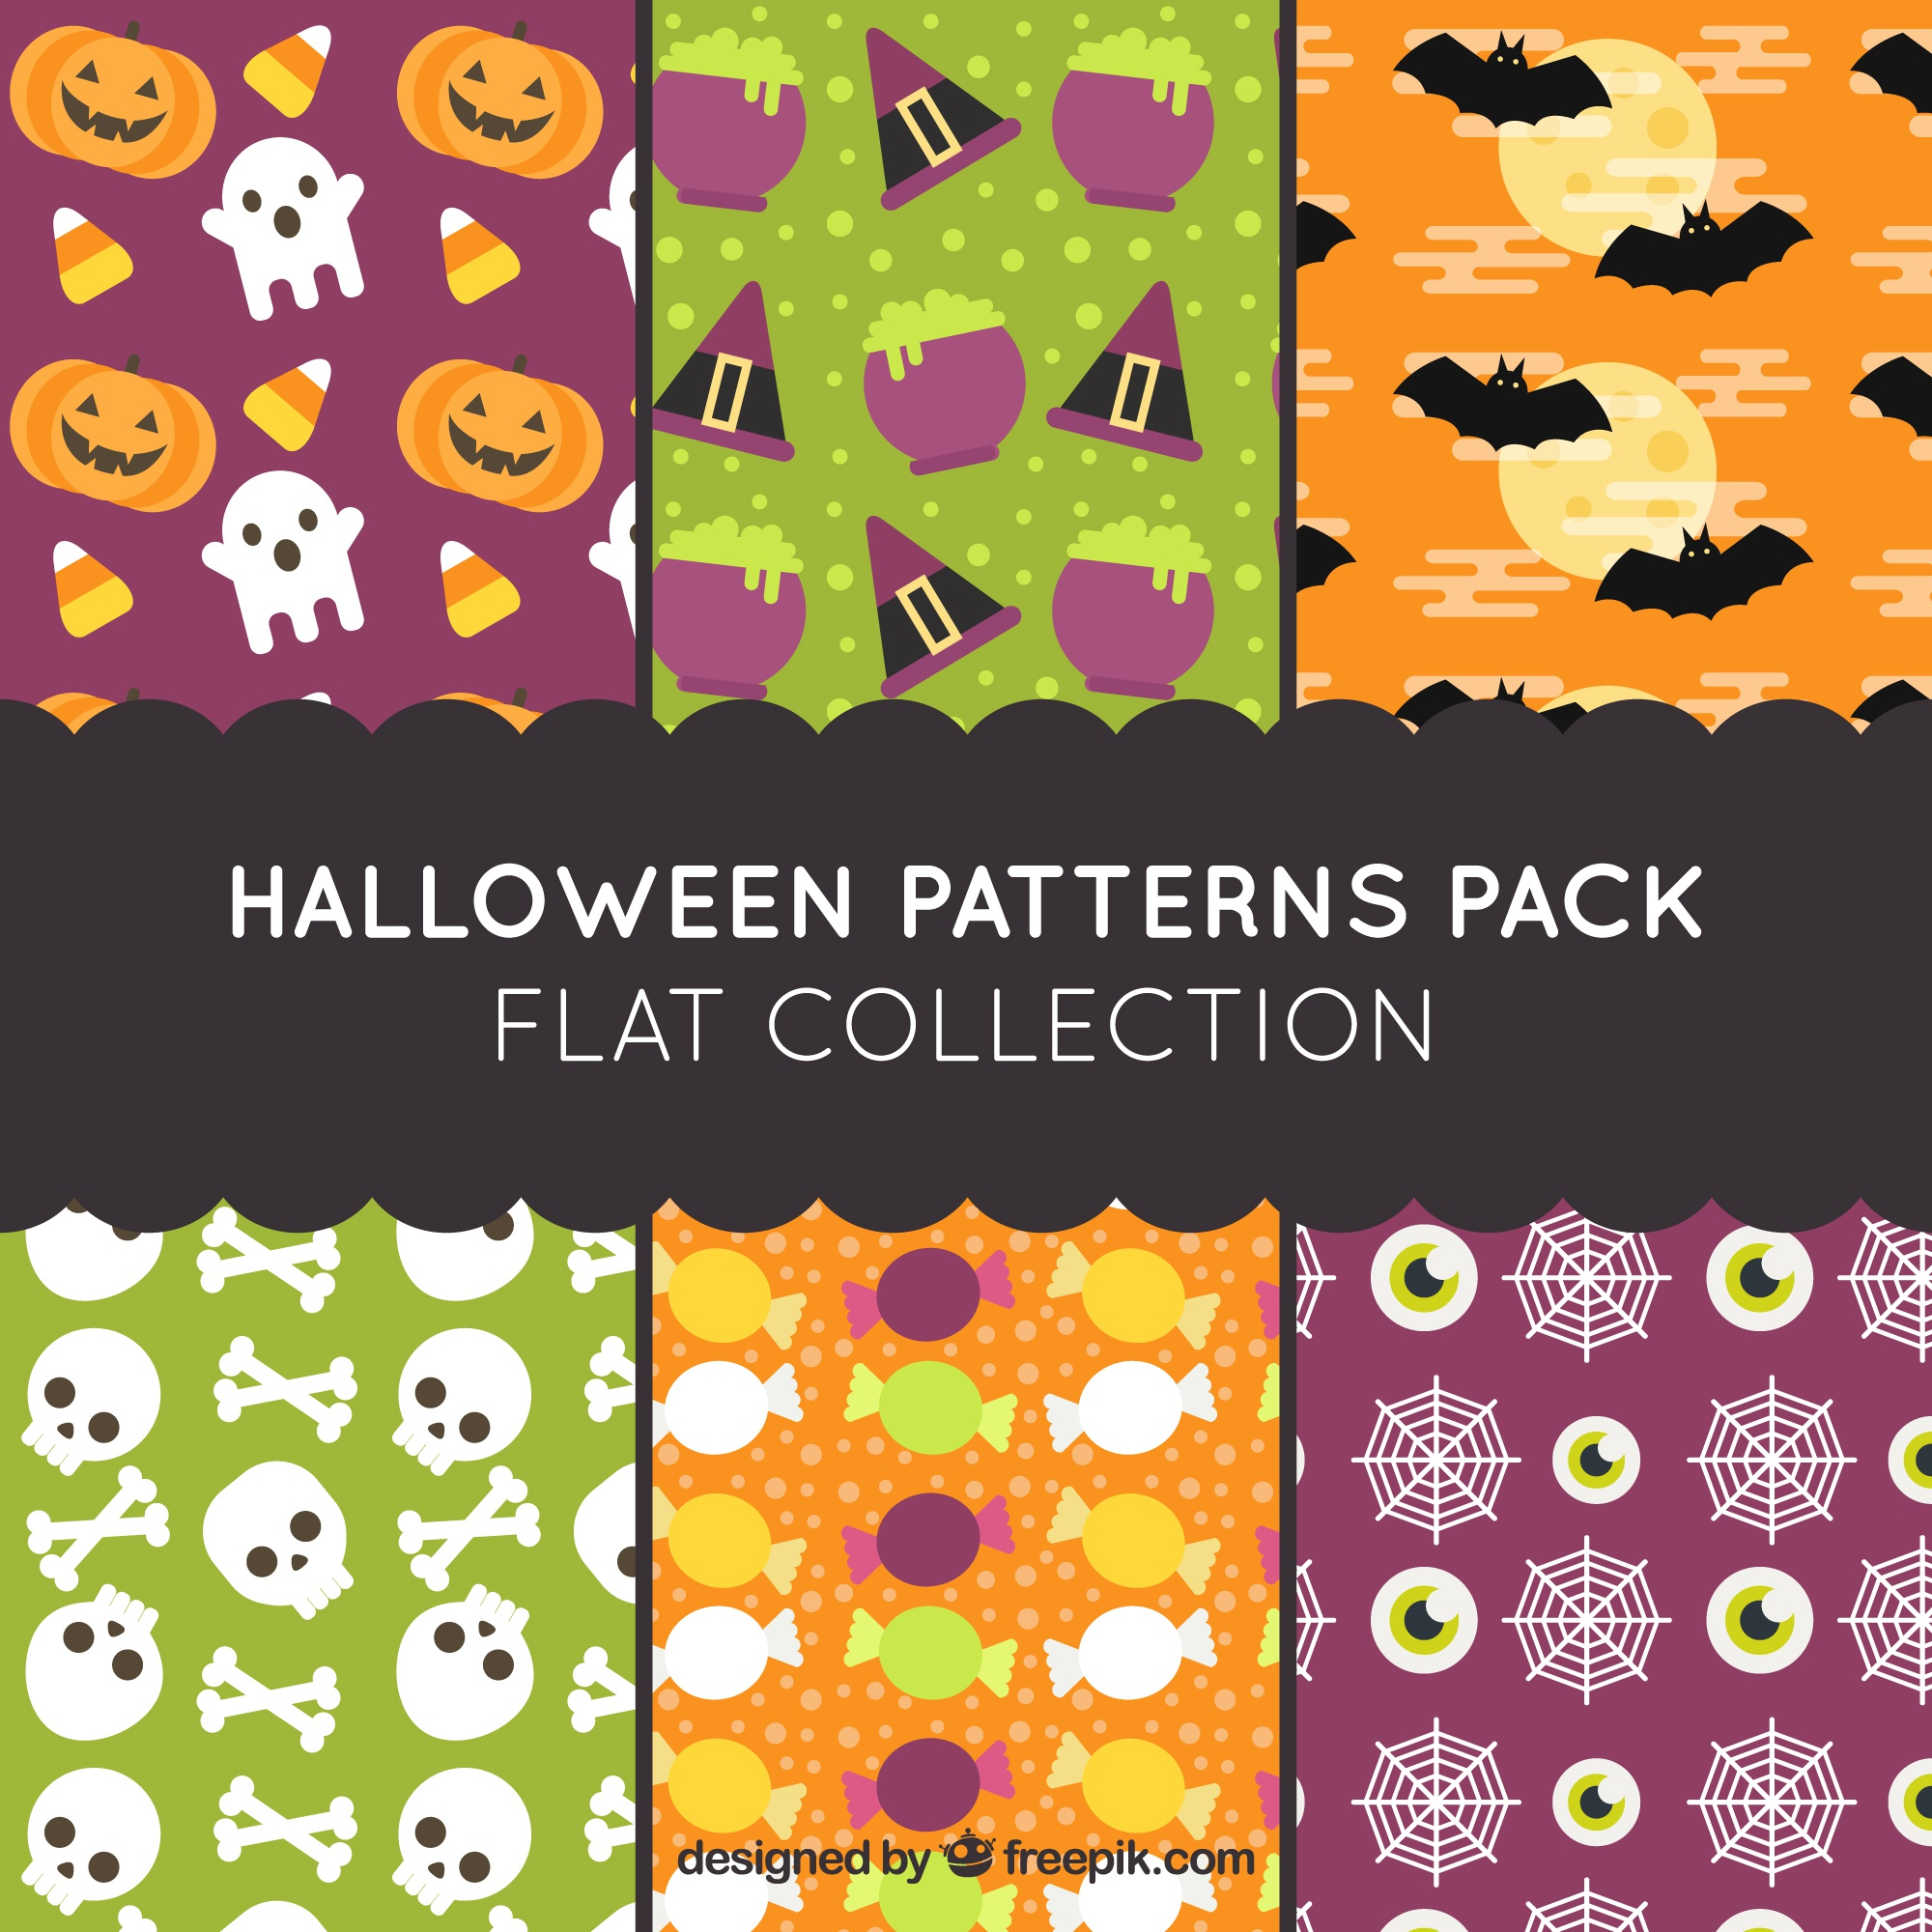 Patterns for happy halloween